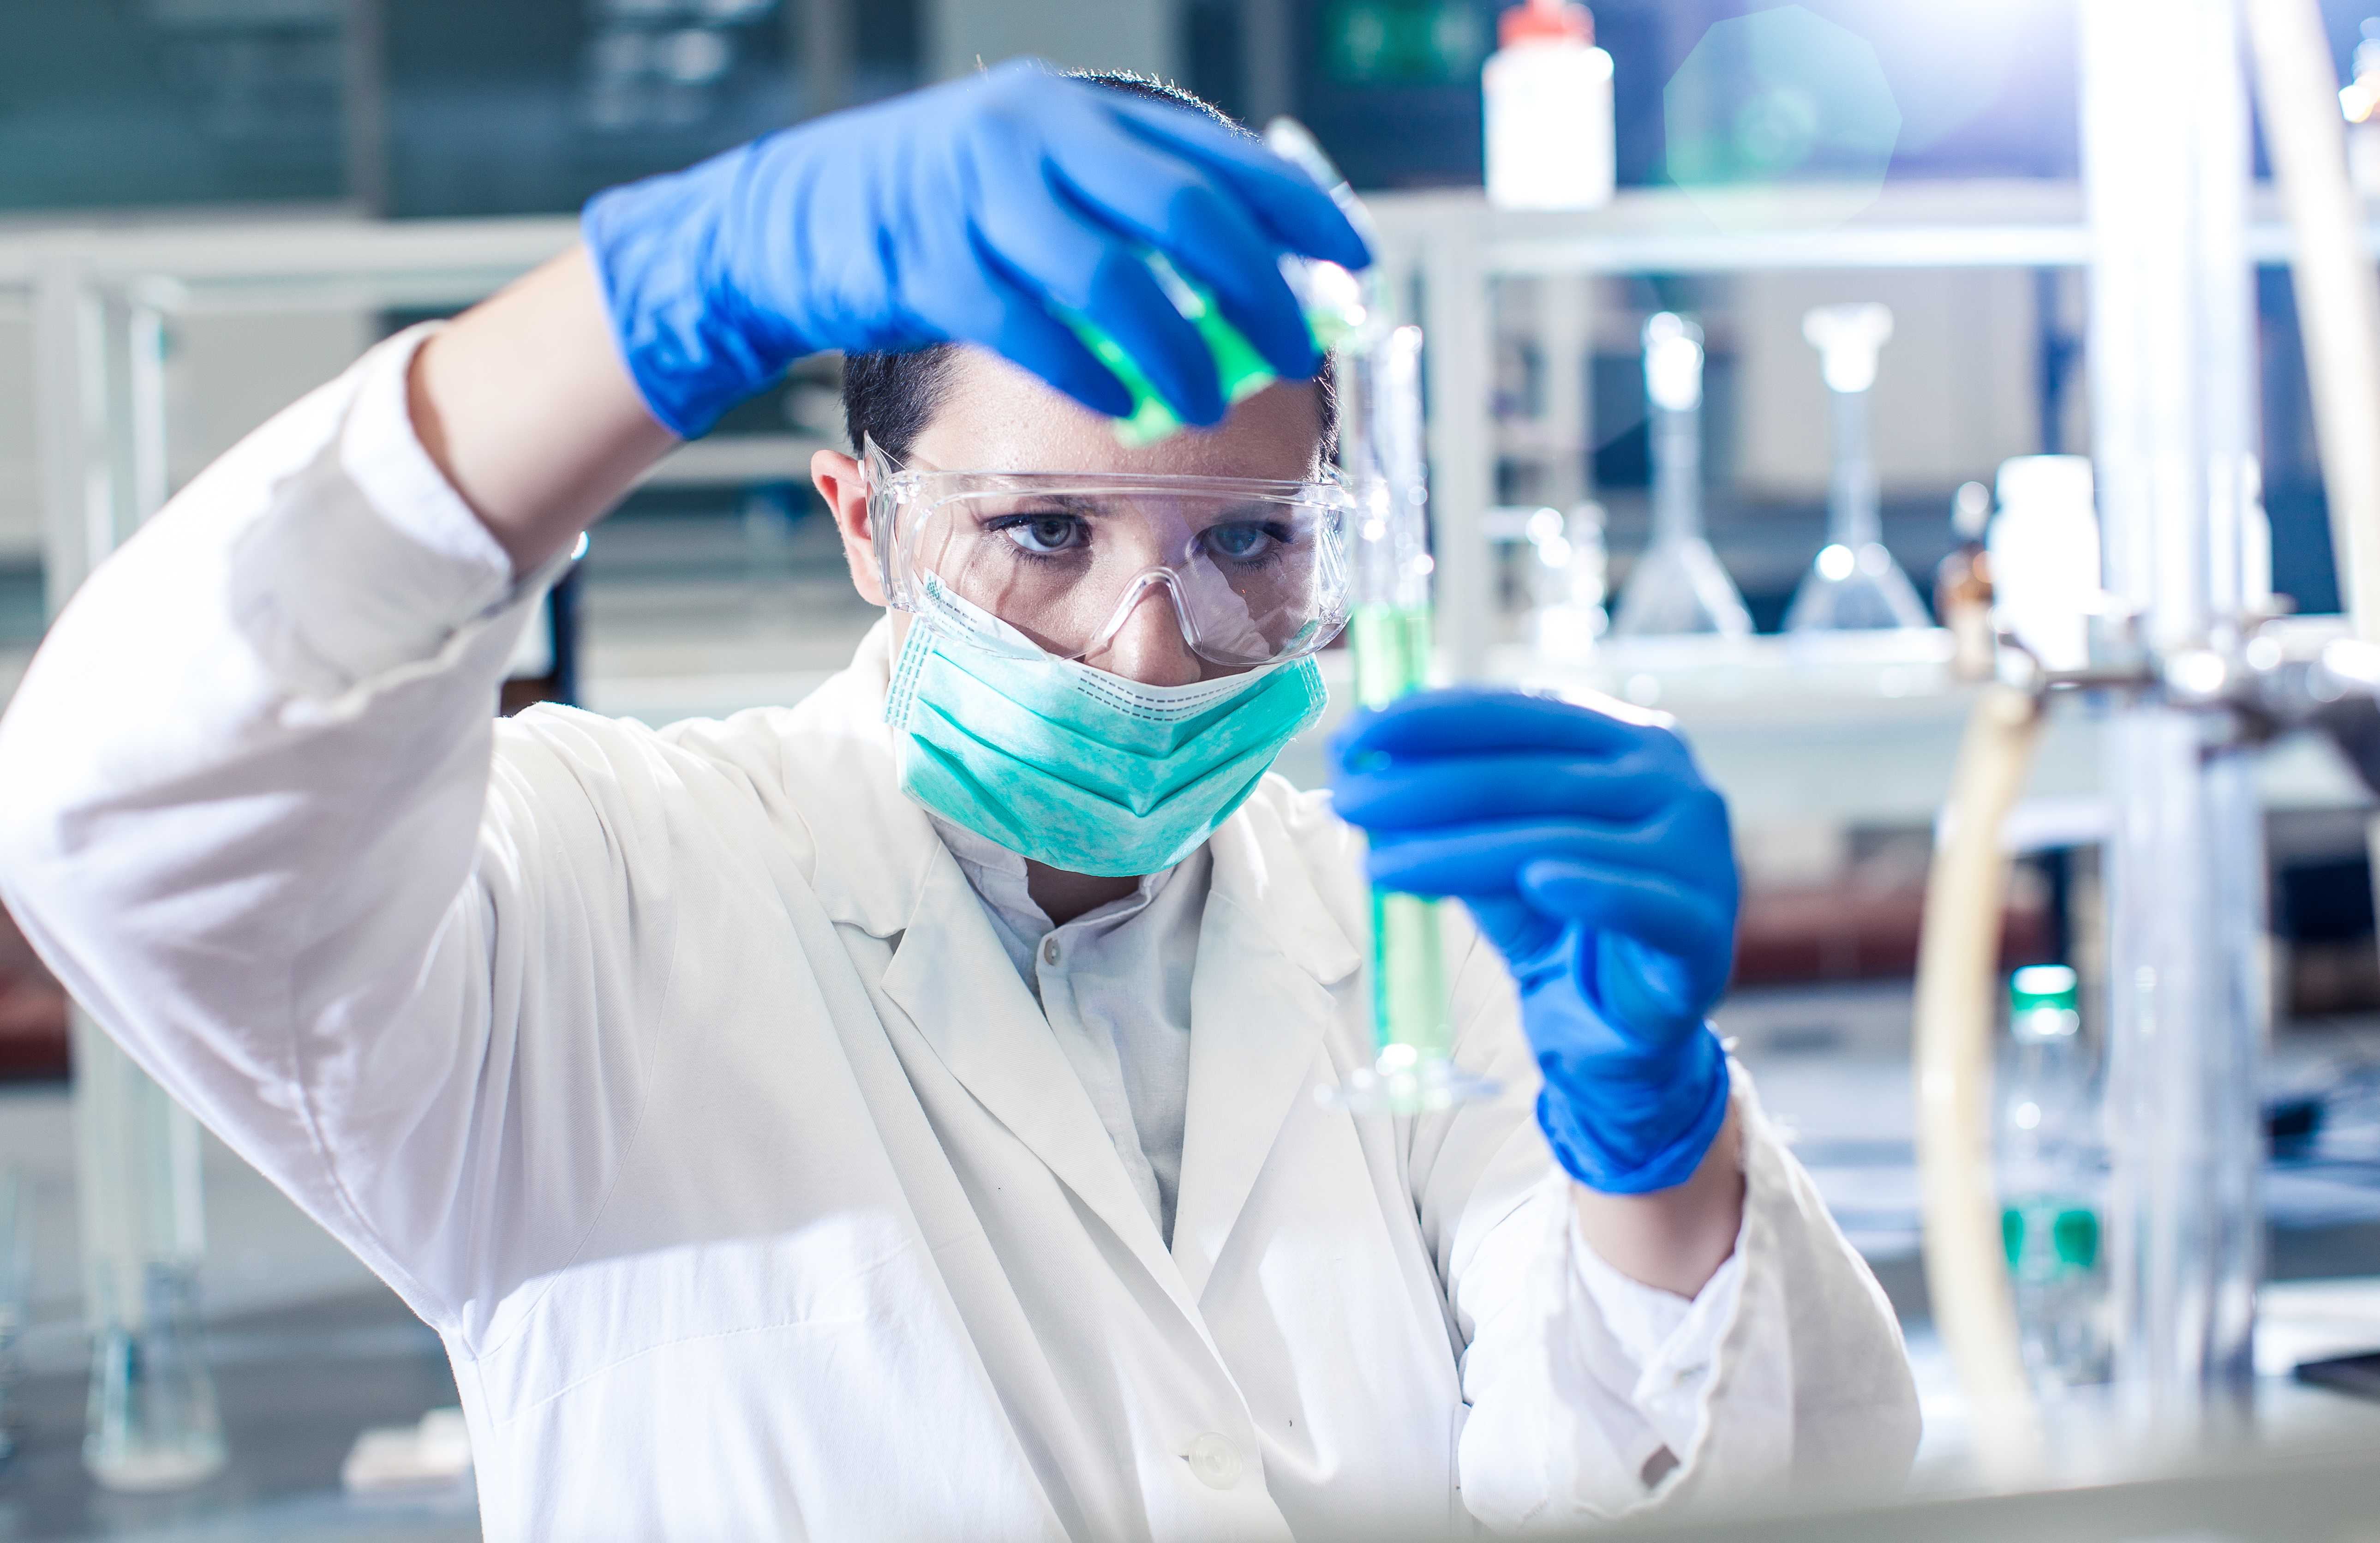 work as a medical laboratory technician